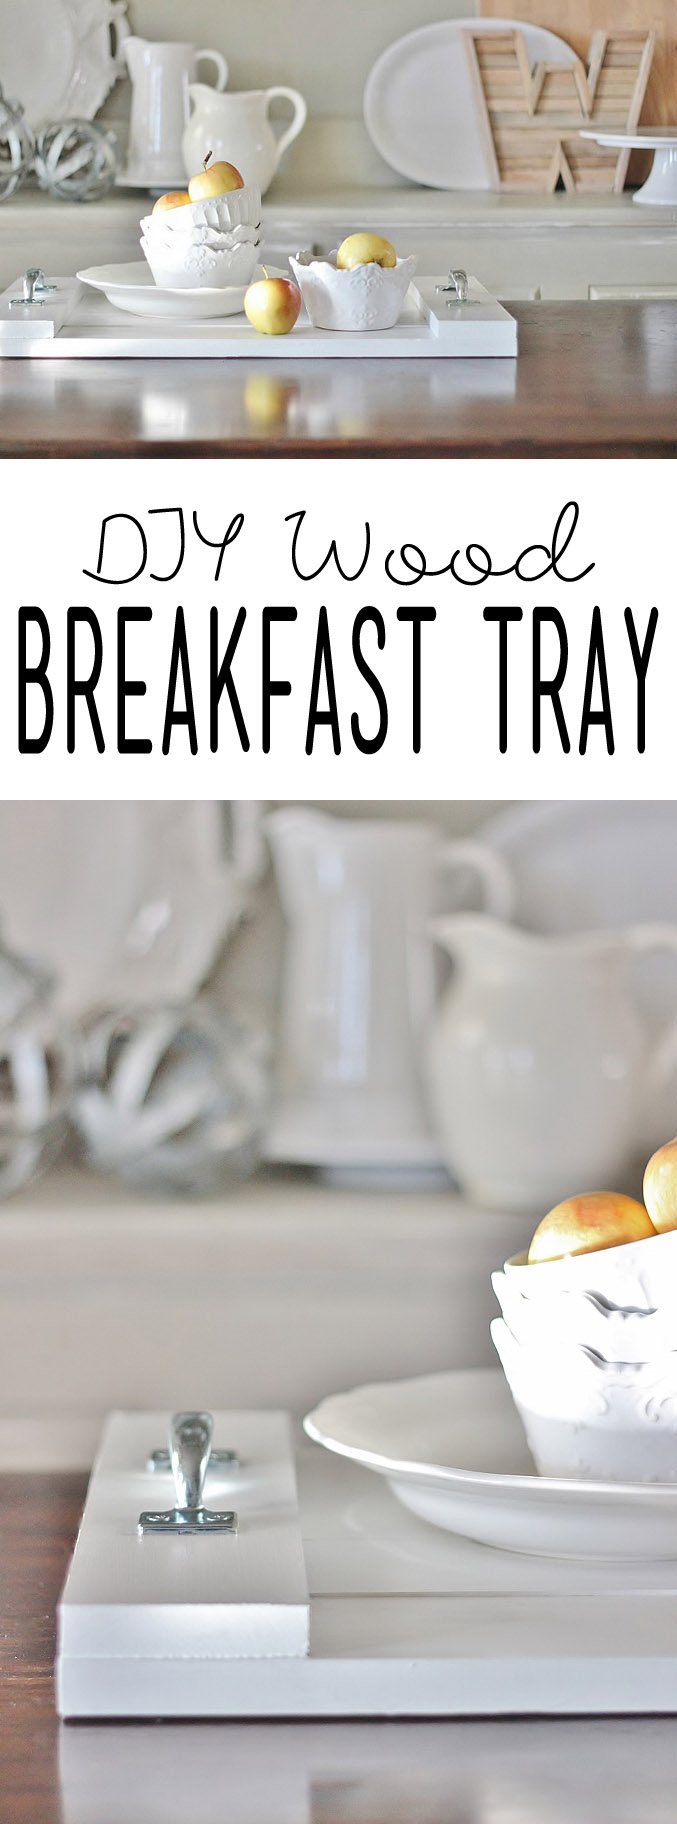 DIY-Breakfast-Tray-tower